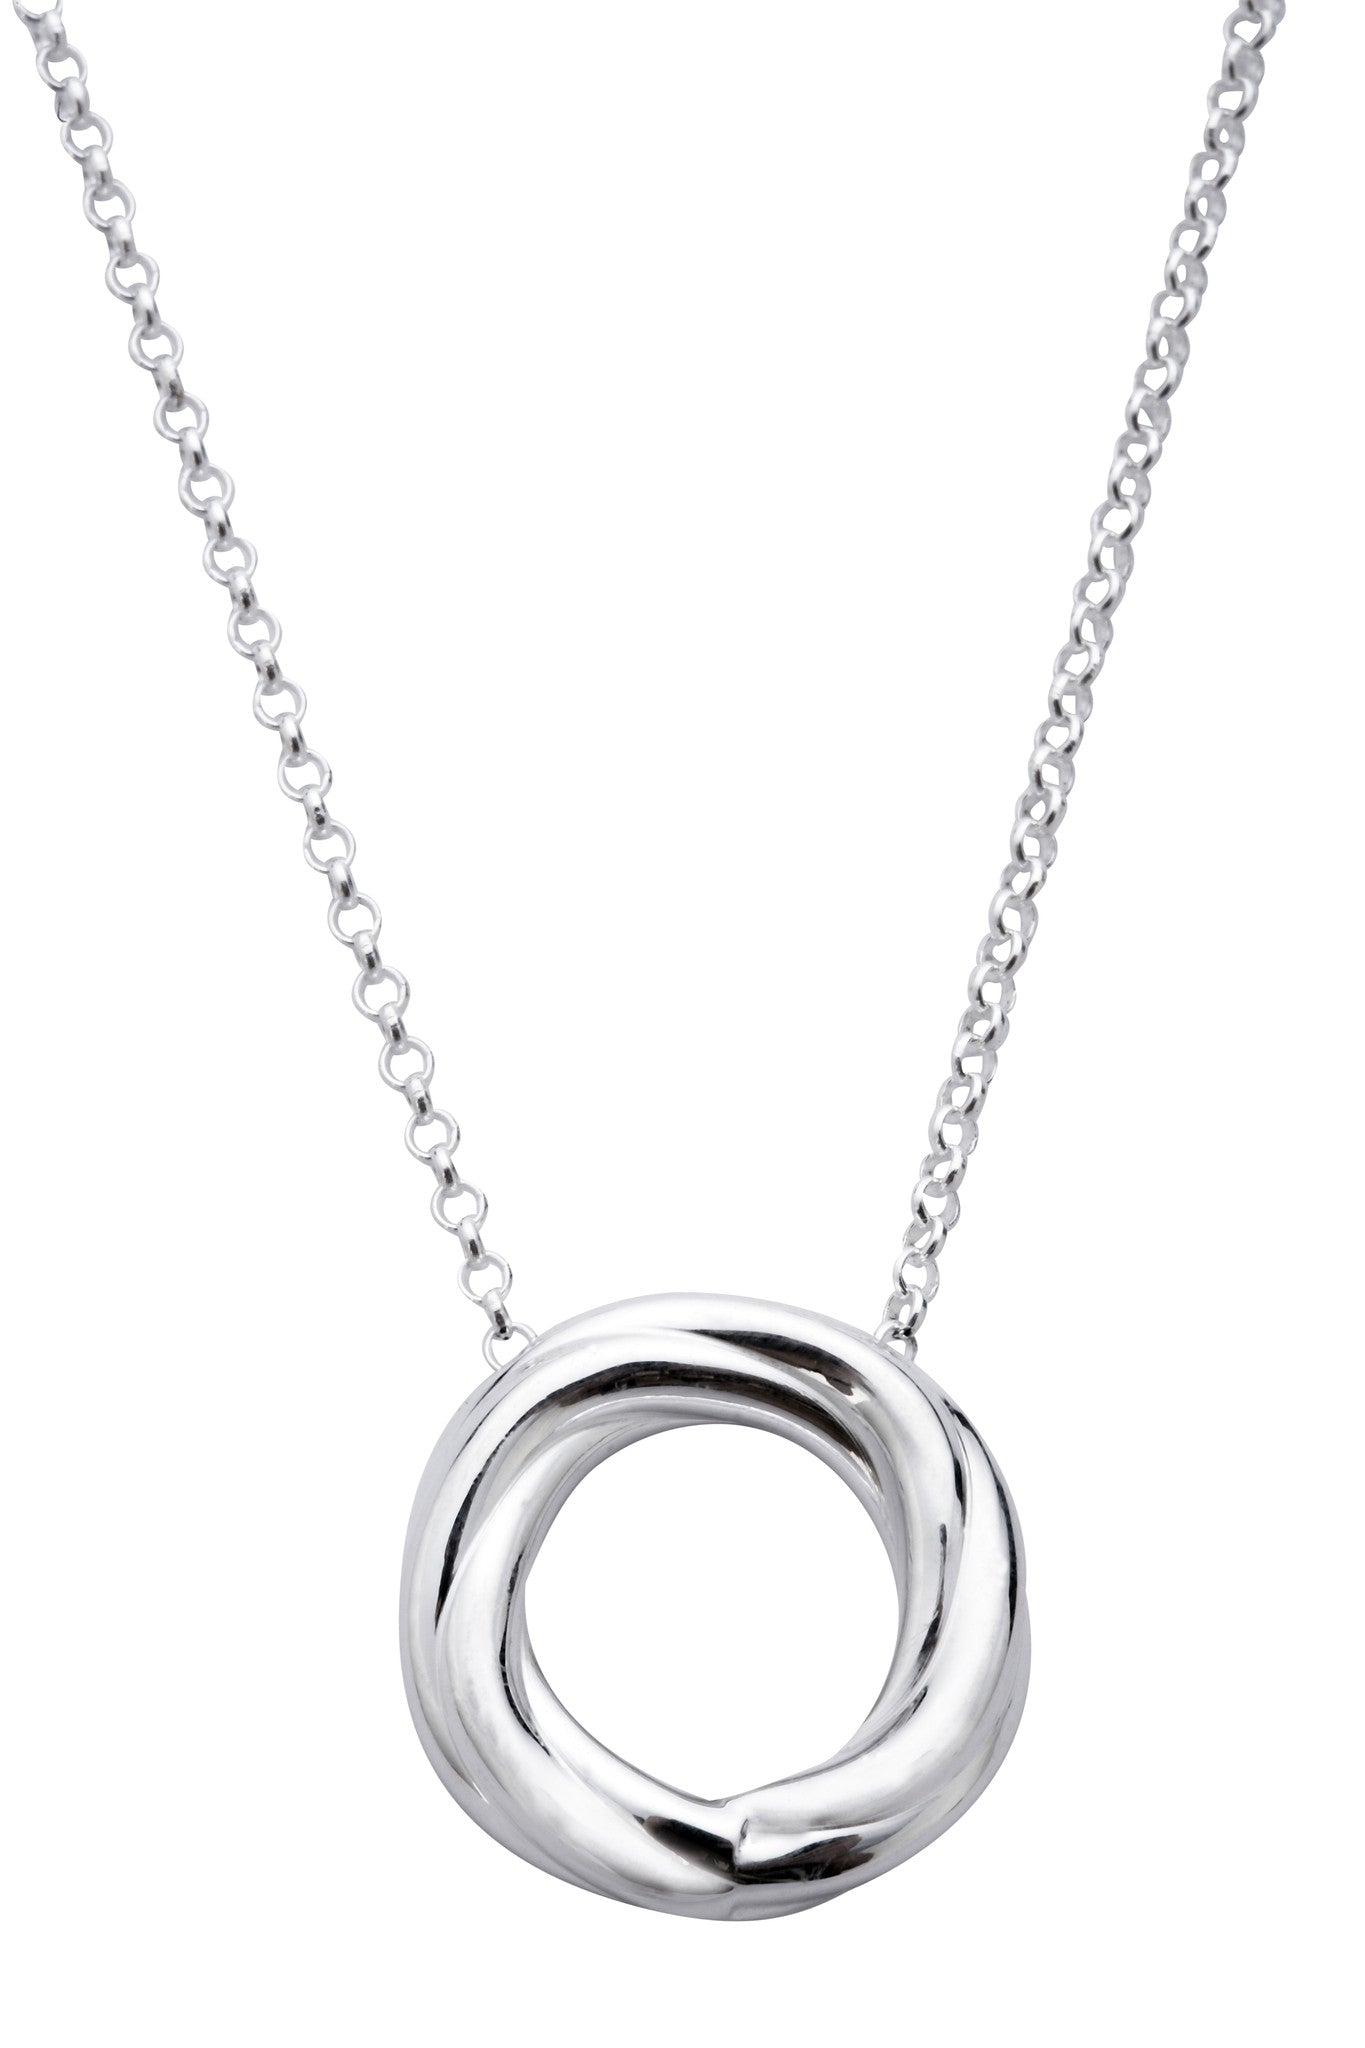 CW Sellors Necklace Flat Round Disc Medium Silver